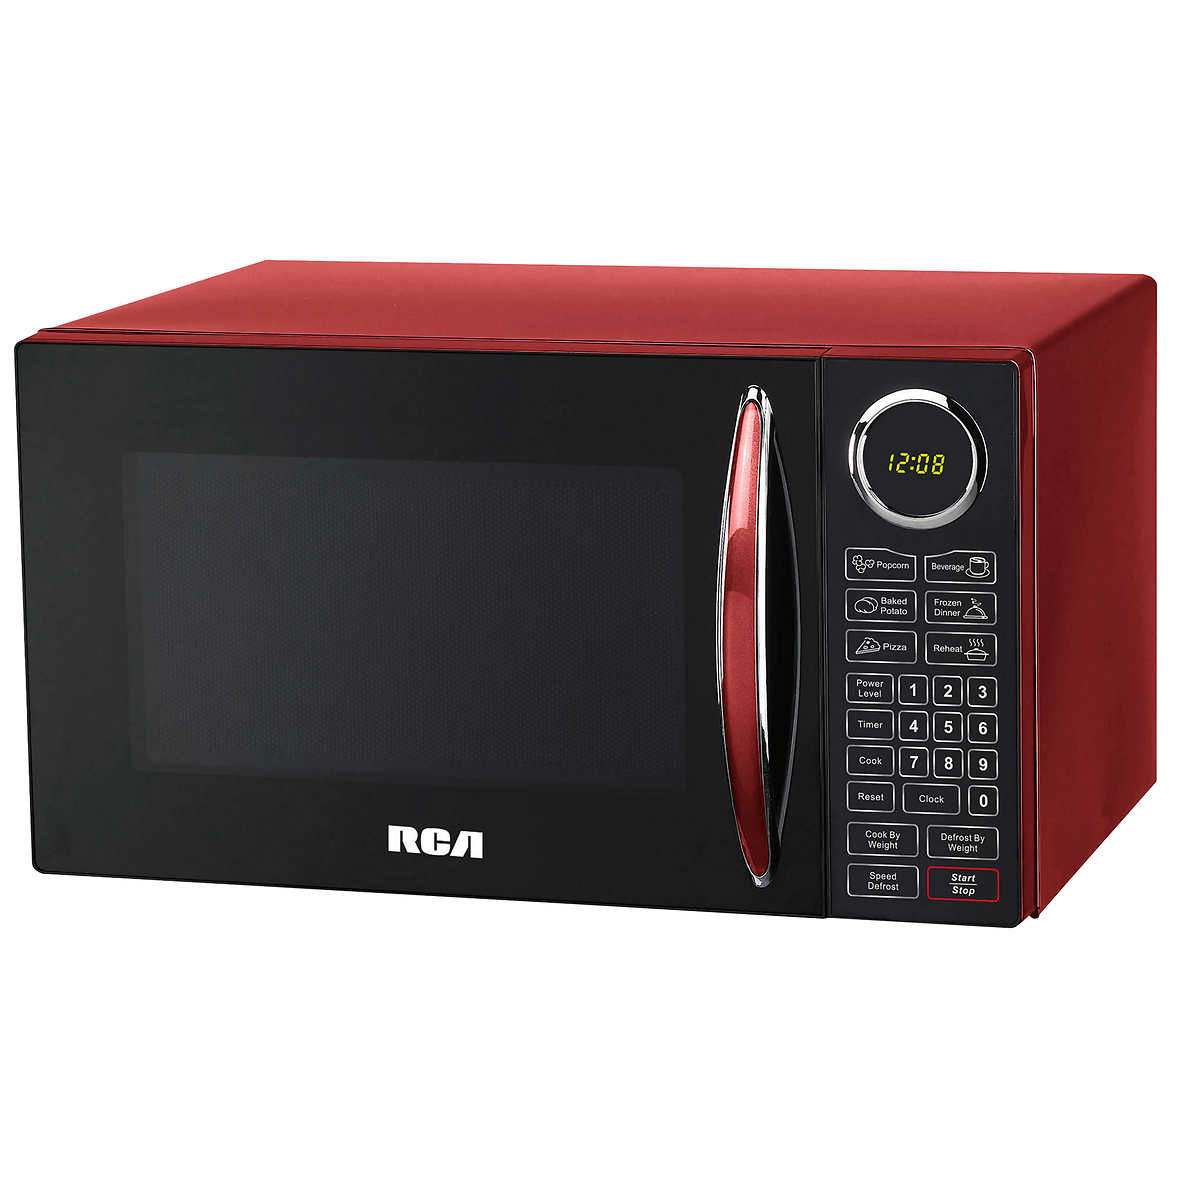 Red Microwave 1